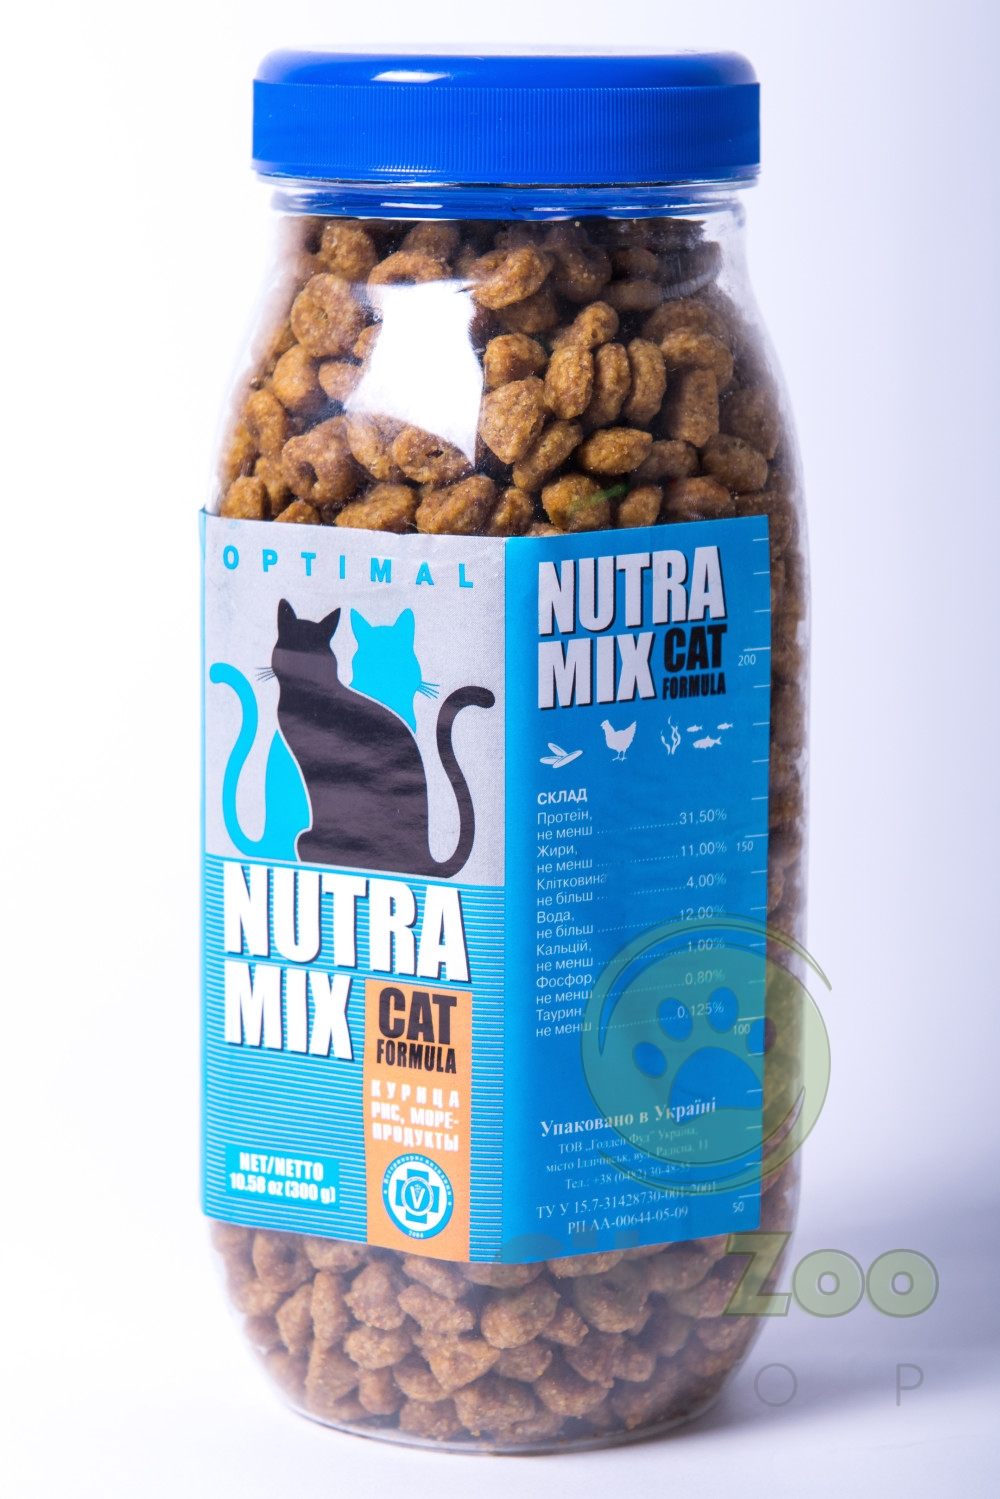 zoo/Nutra_Mix_Cat_Optimal_banka